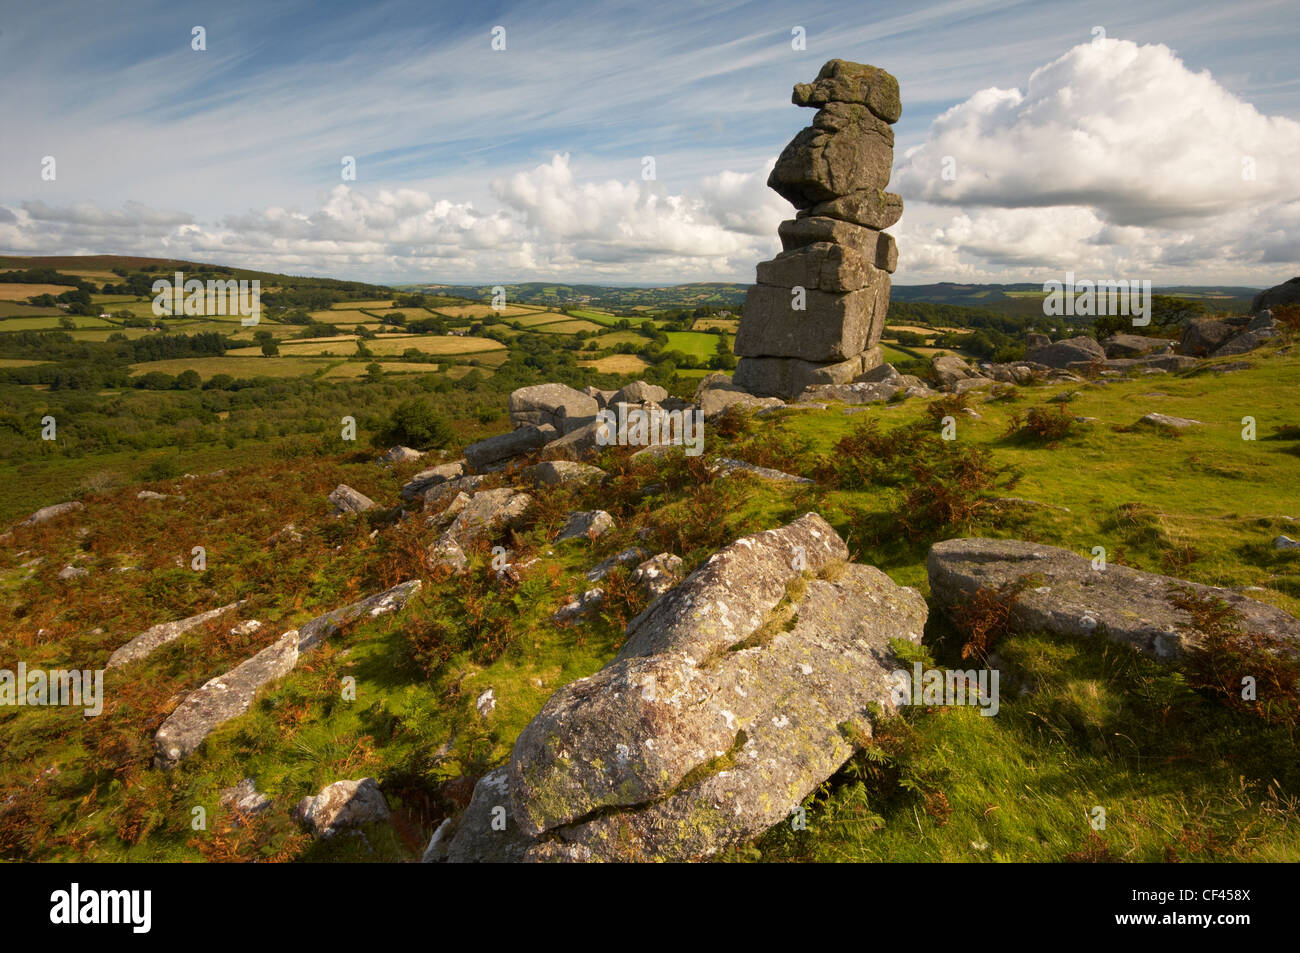 Bowermans Nose, a stack of weathered granite on the northern slopes of Hayne Down on Dartmoor. - Stock Image